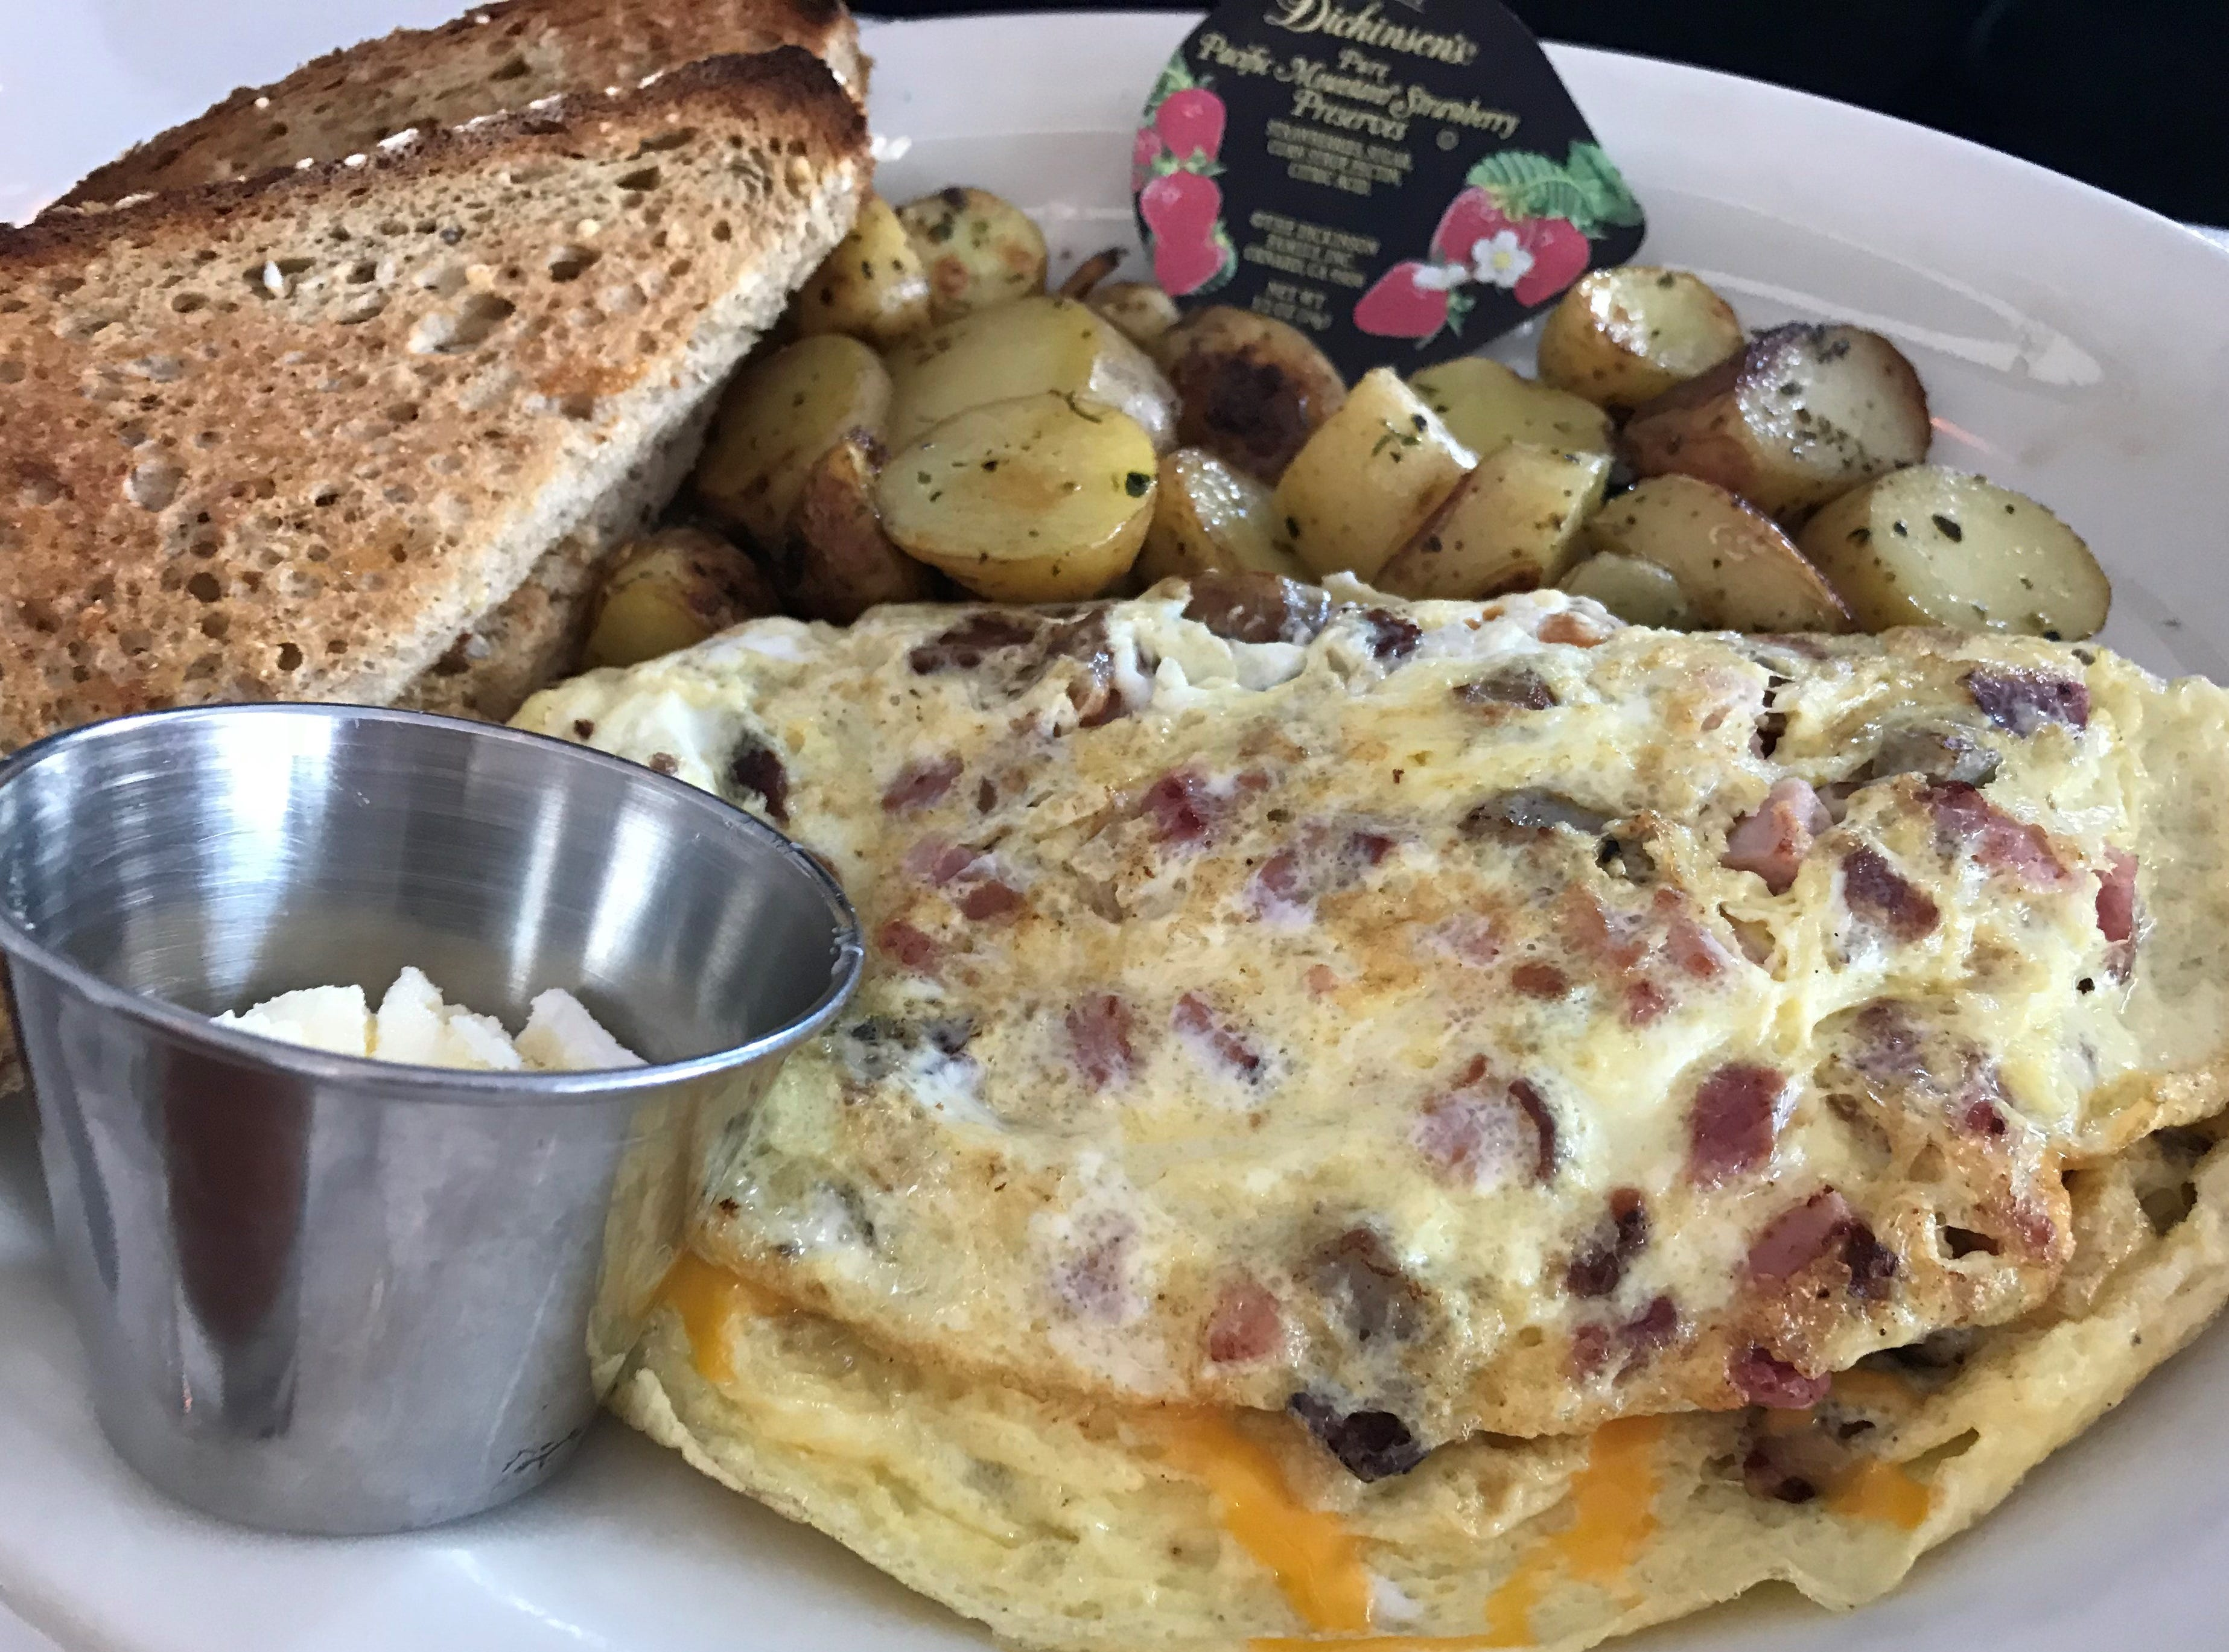 Zisters, a brunch restaurant in Elm Grove, serves a three-meat omelet (bacon, sausage and ham) with cheddar, plus potatoes and toast on the side.